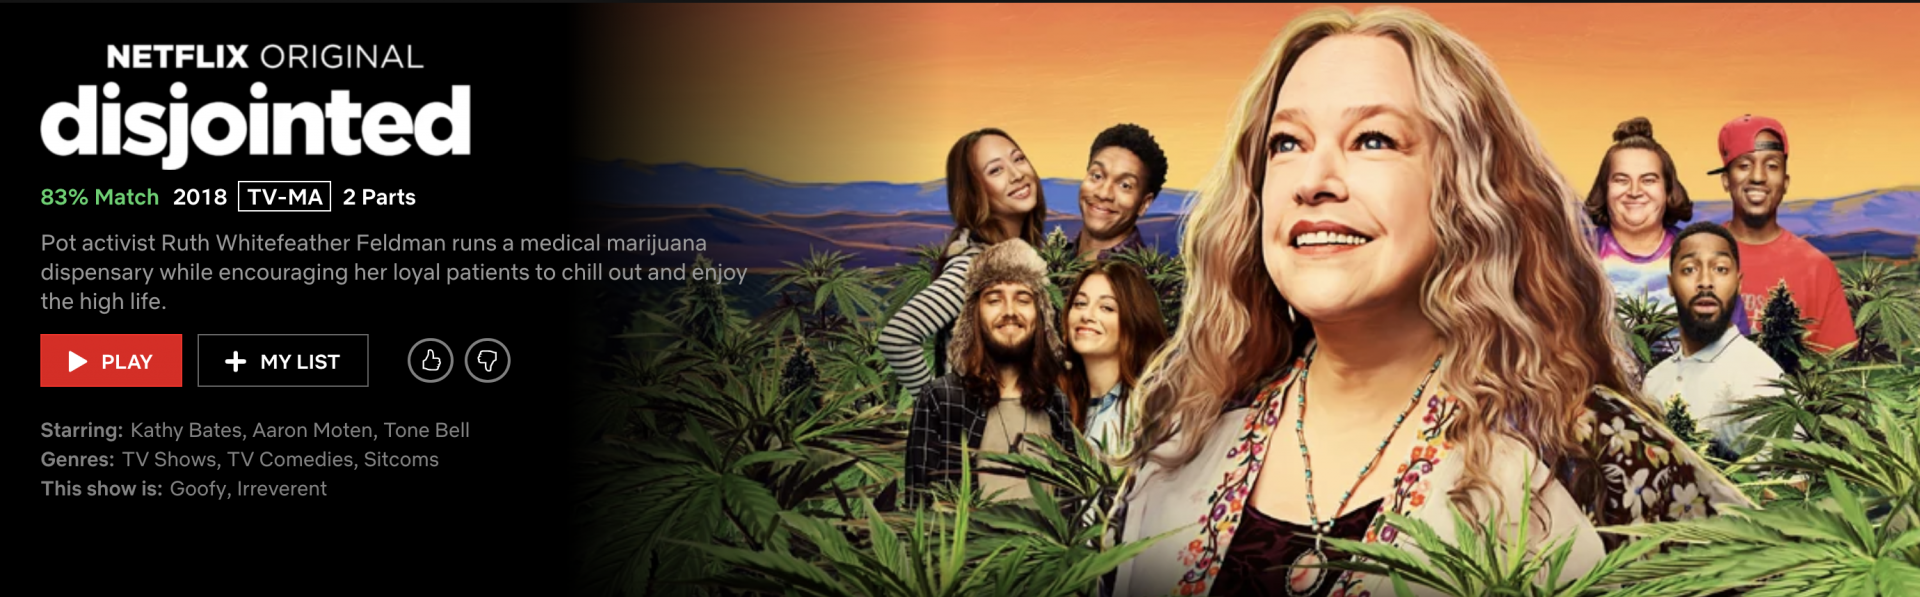 Disjointed – Netflix Original